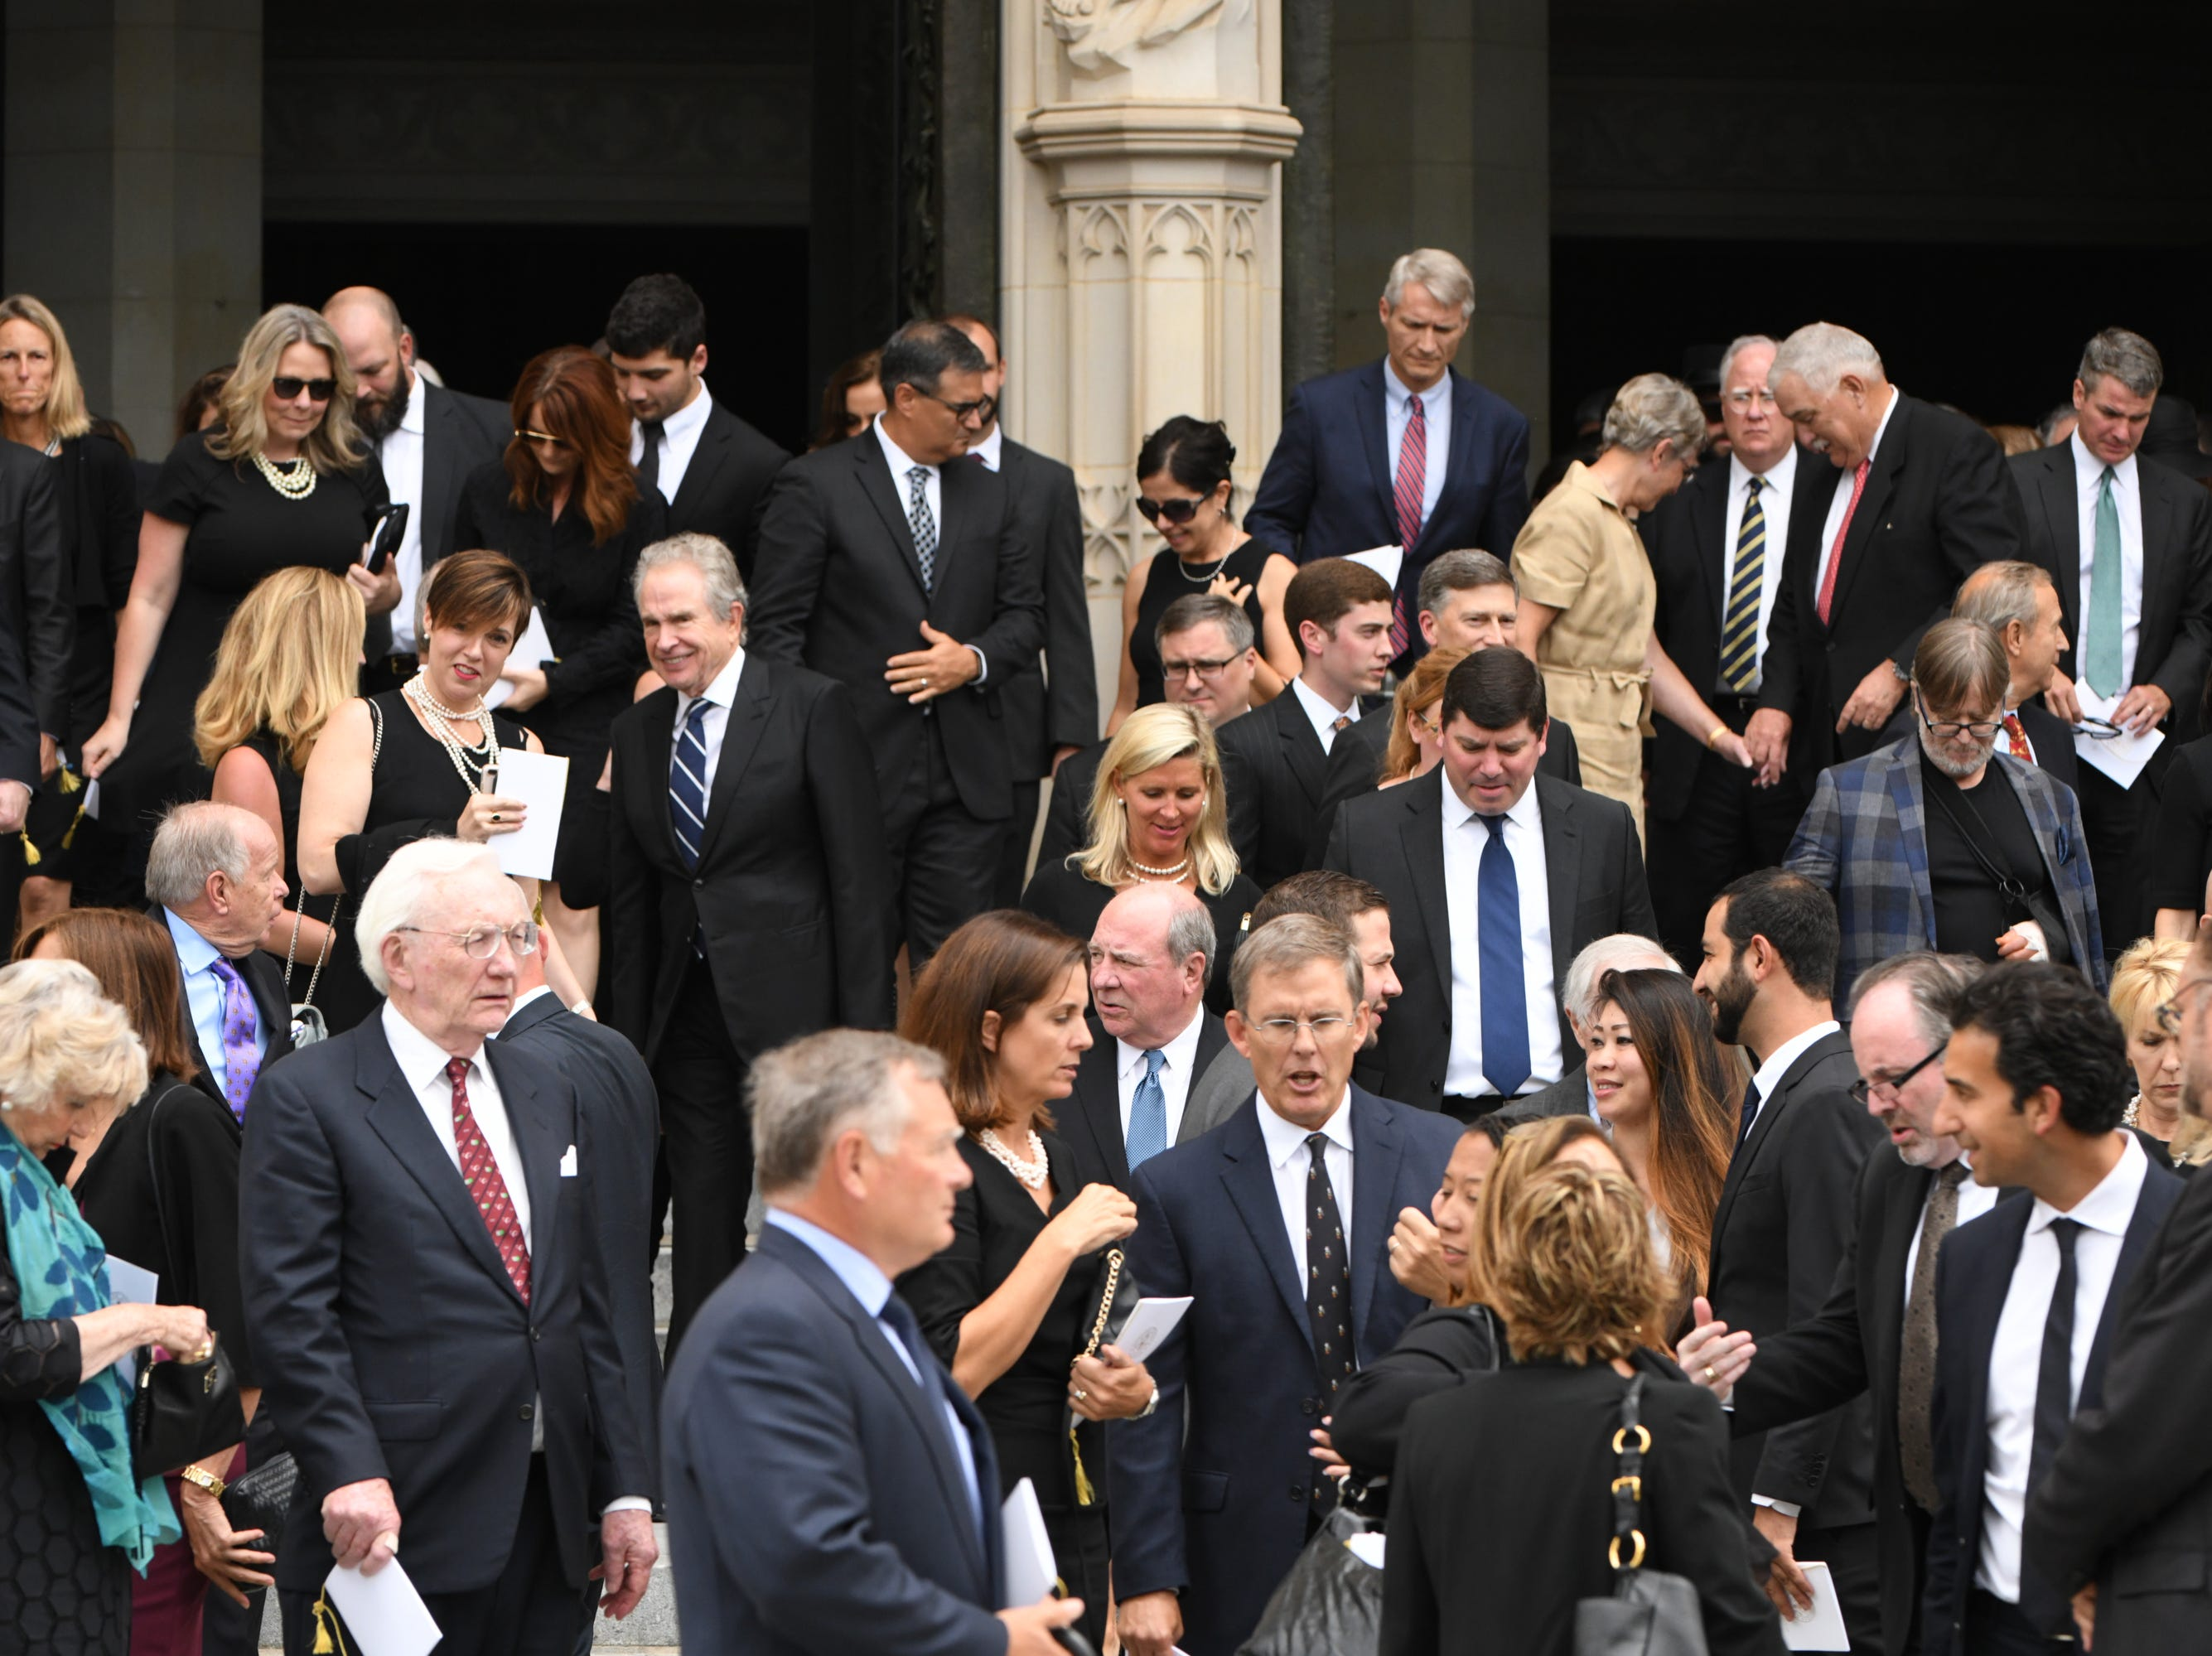 9/1/18 12:46:22 PM -- Washington, DC, U.S.A  -- Mourners leave the memorial service for John McCain at the National Cathedral in Washington on Sept. 1, 2018. Sen. McCain died on Aug. 25. --    Photo by Jasper Colt, USA TODAY Staff